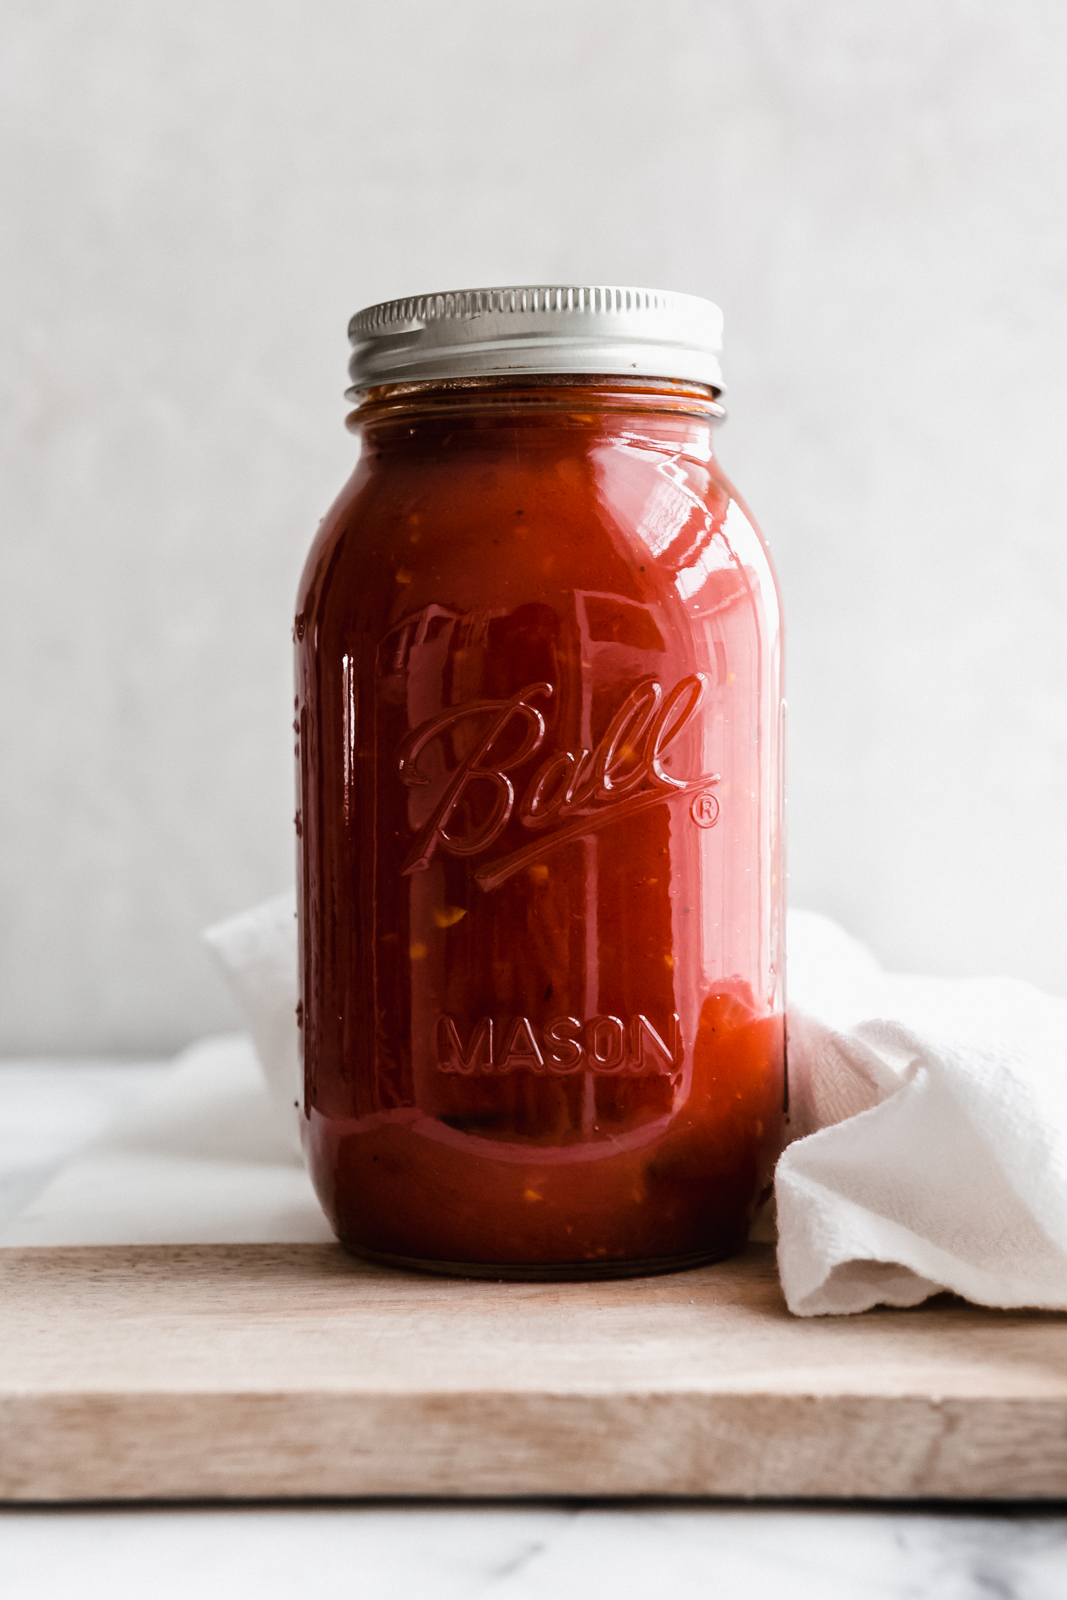 Arrabbiata sauce in glass jar filled and capped on wood surface on marble